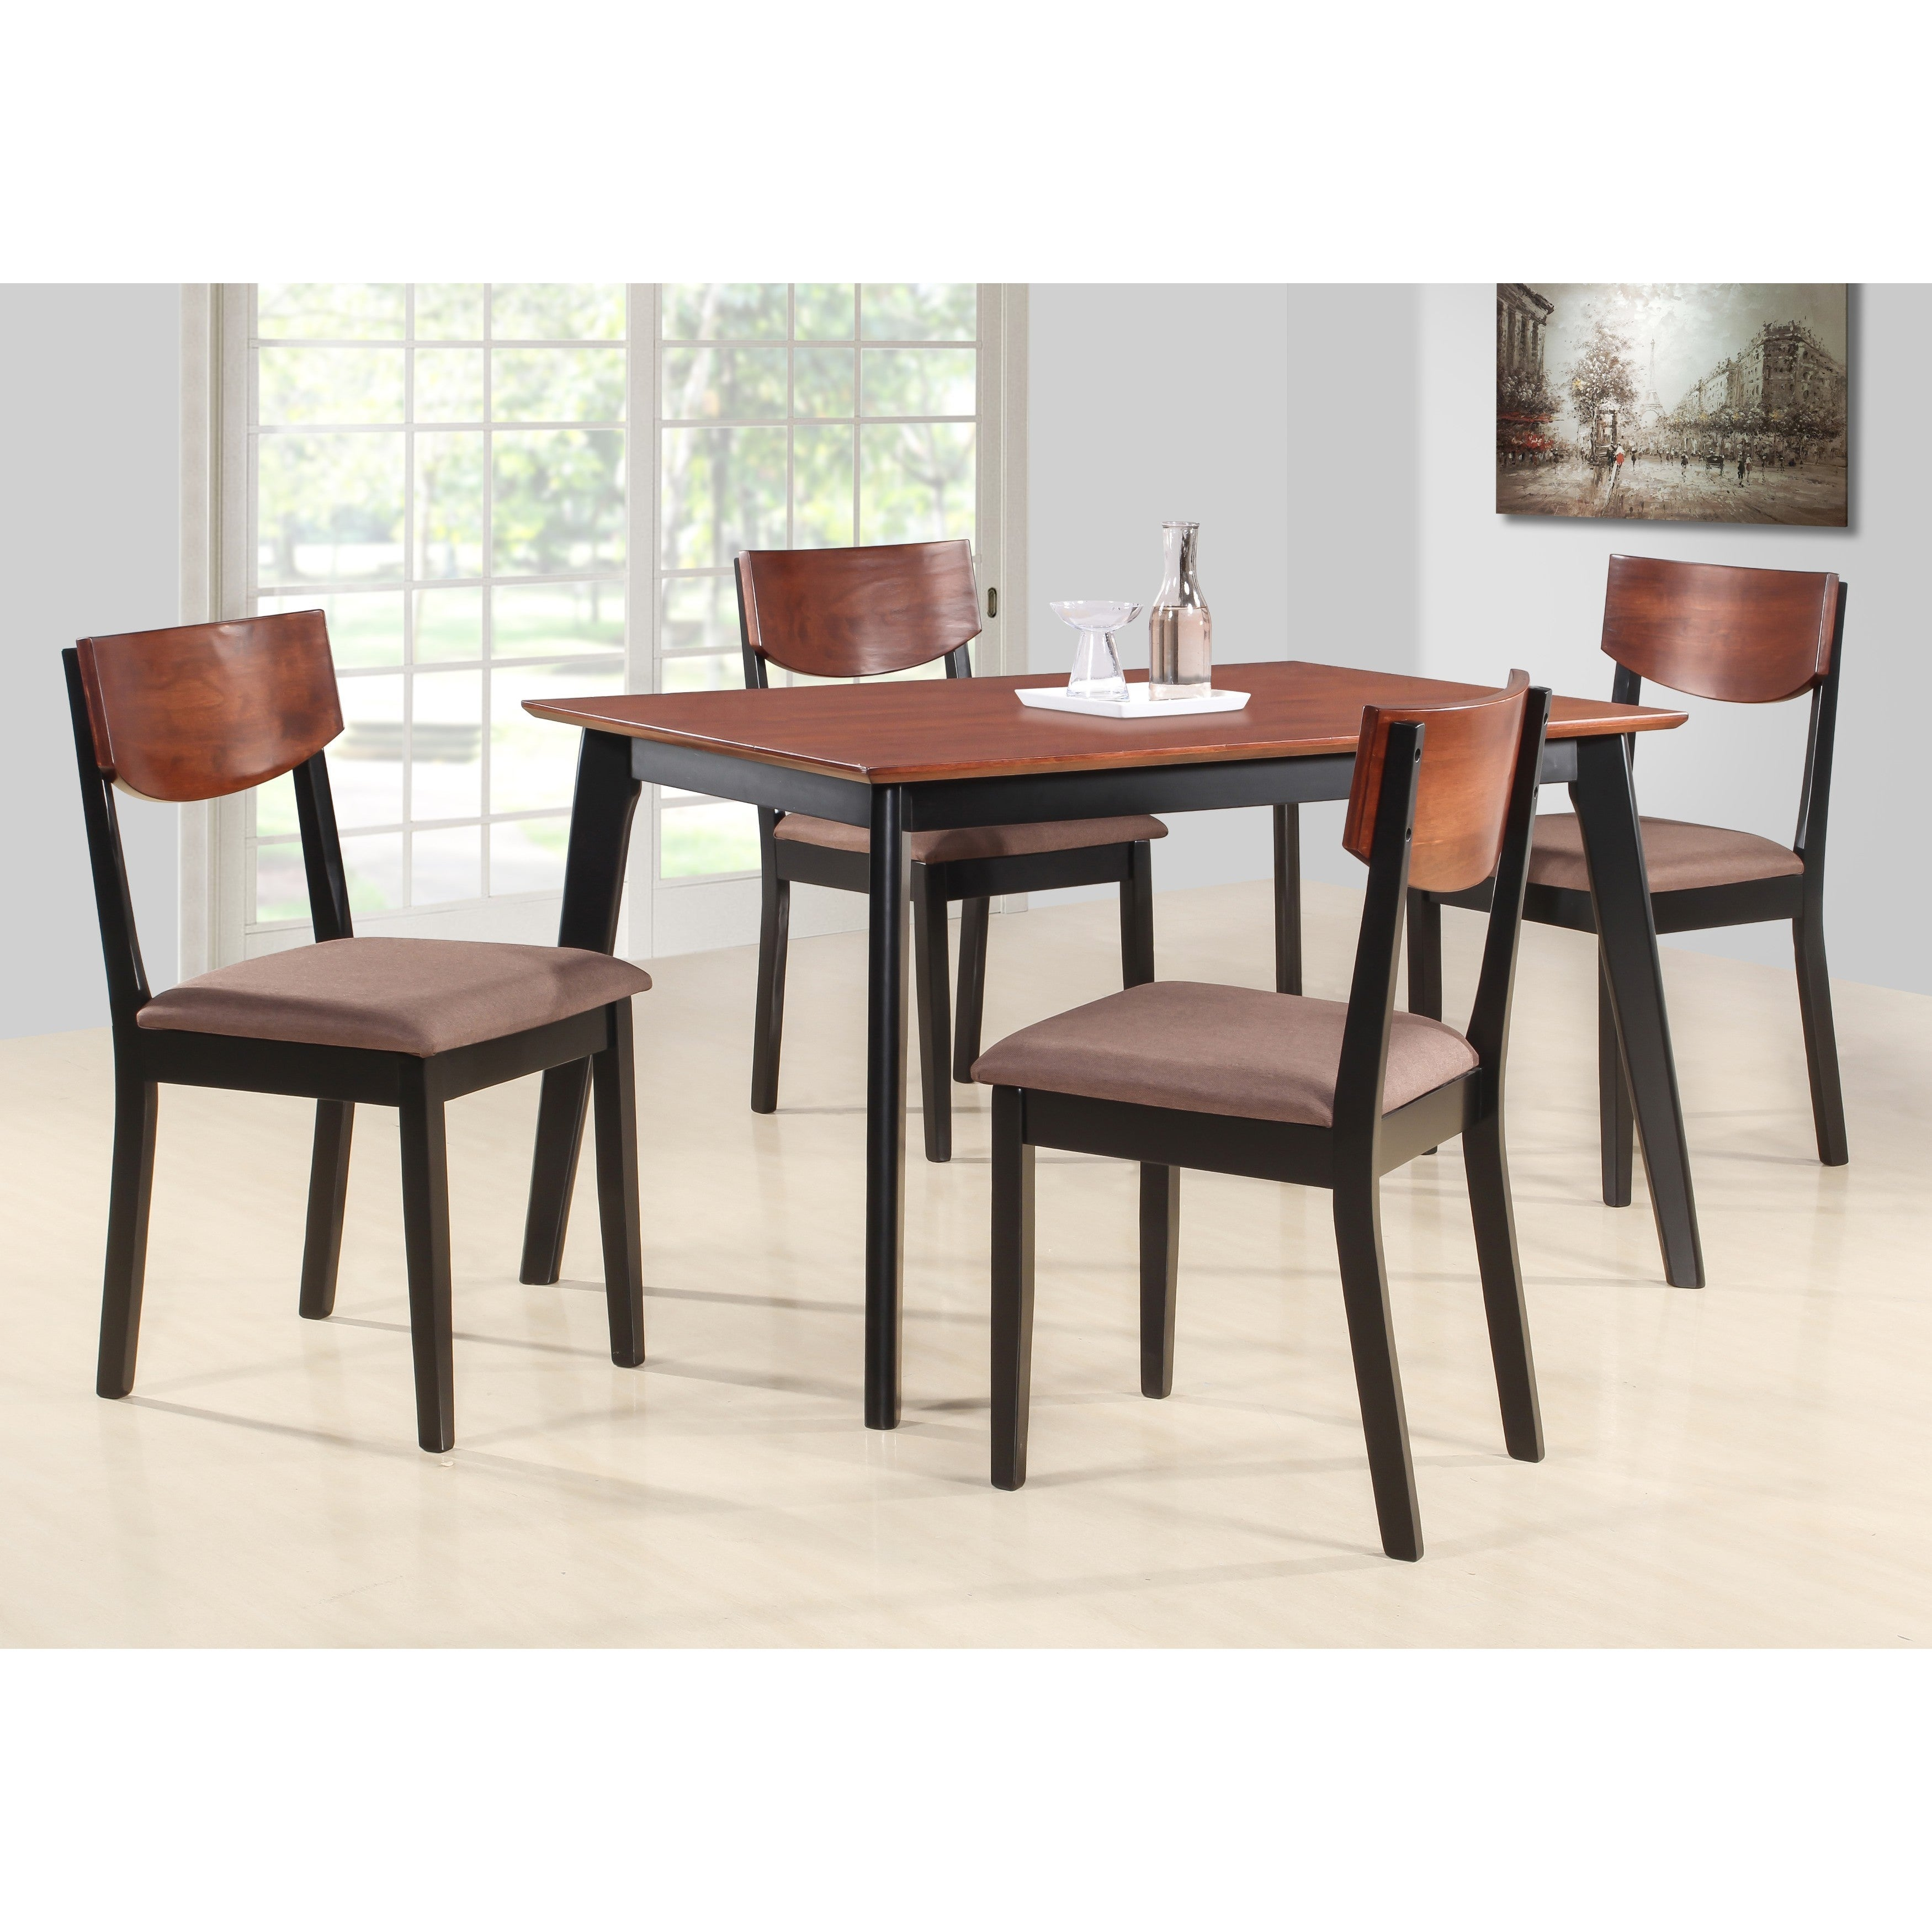 K And B Furniture Casey Brown Black Wood Dining Chairs Set Of 4 Free Shipping Today 15050737